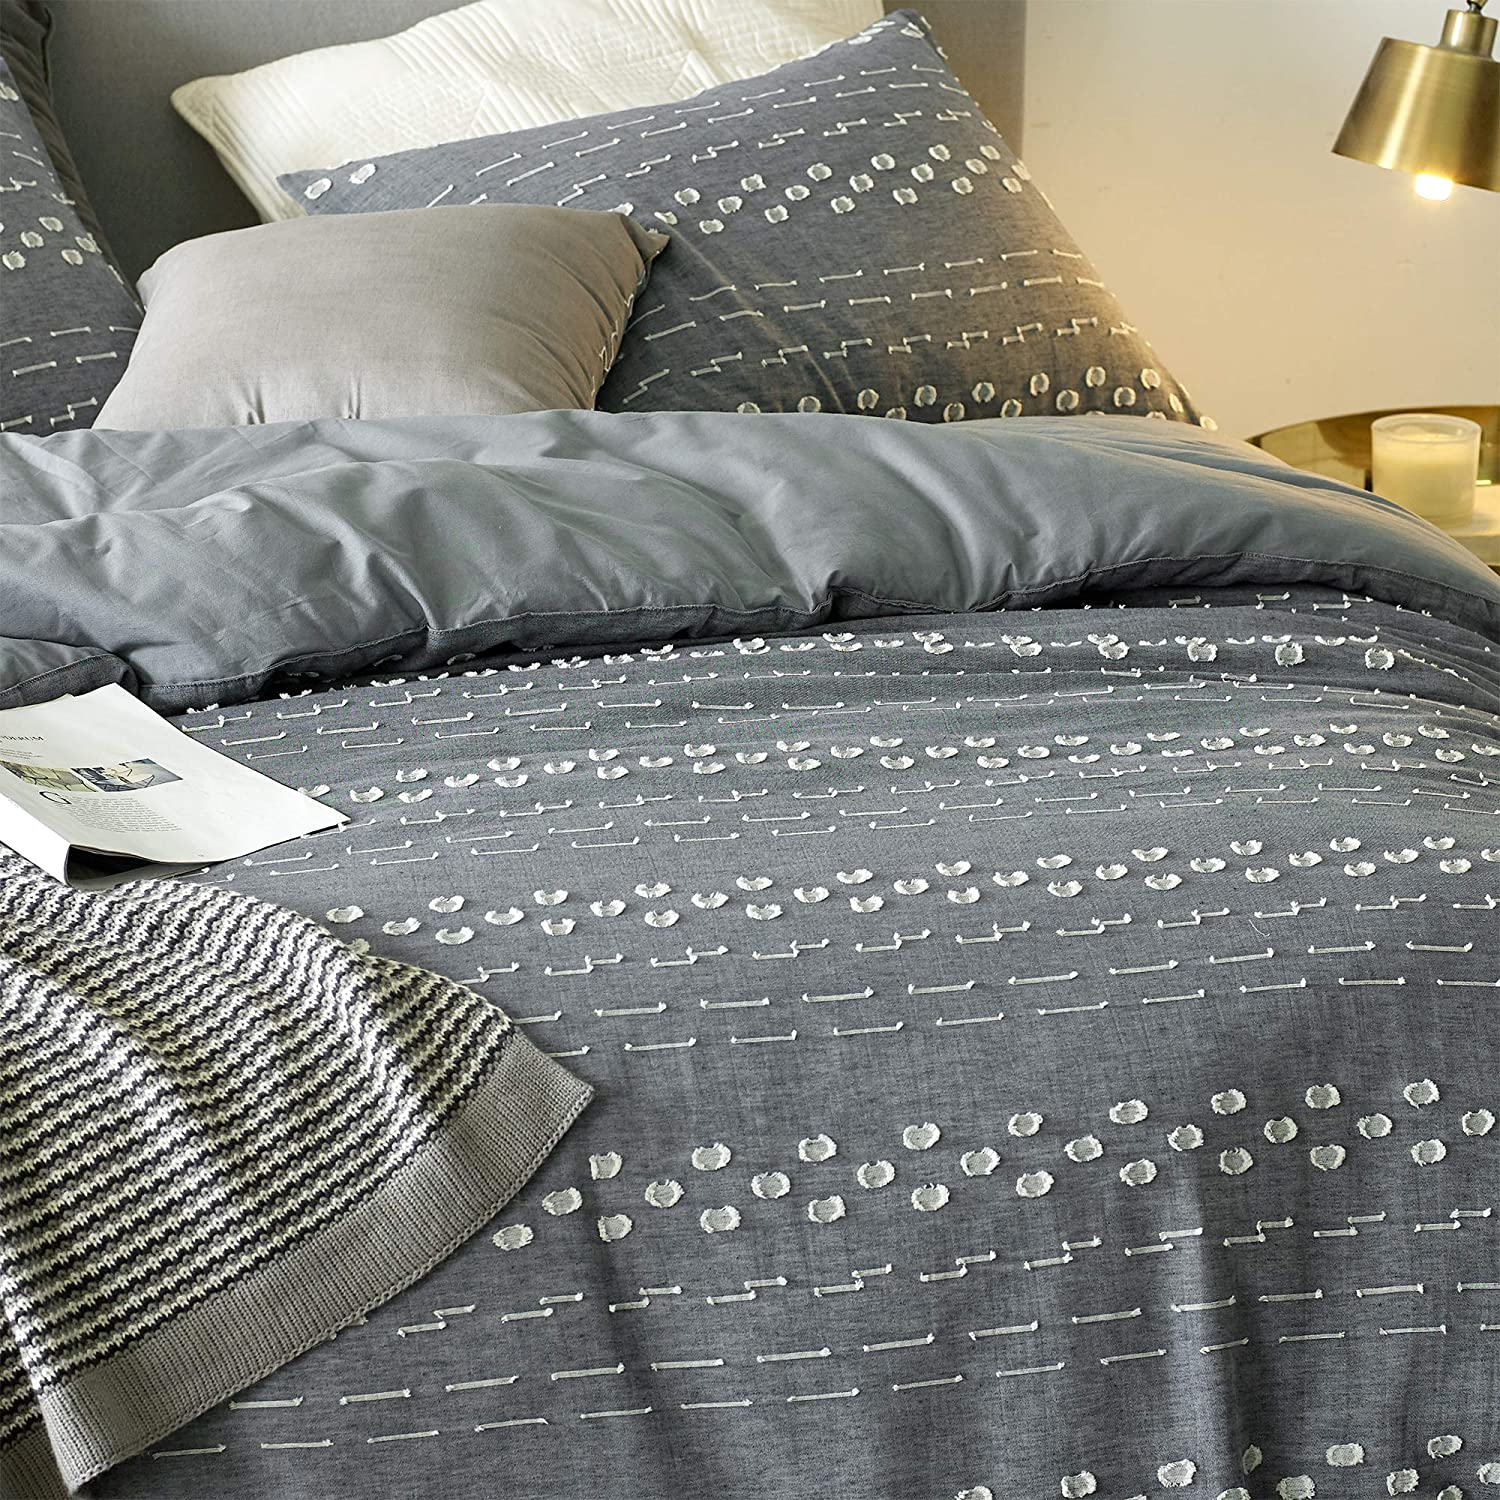 Byourbed Conceptual Gray Textured Twin XL Duvet Cover